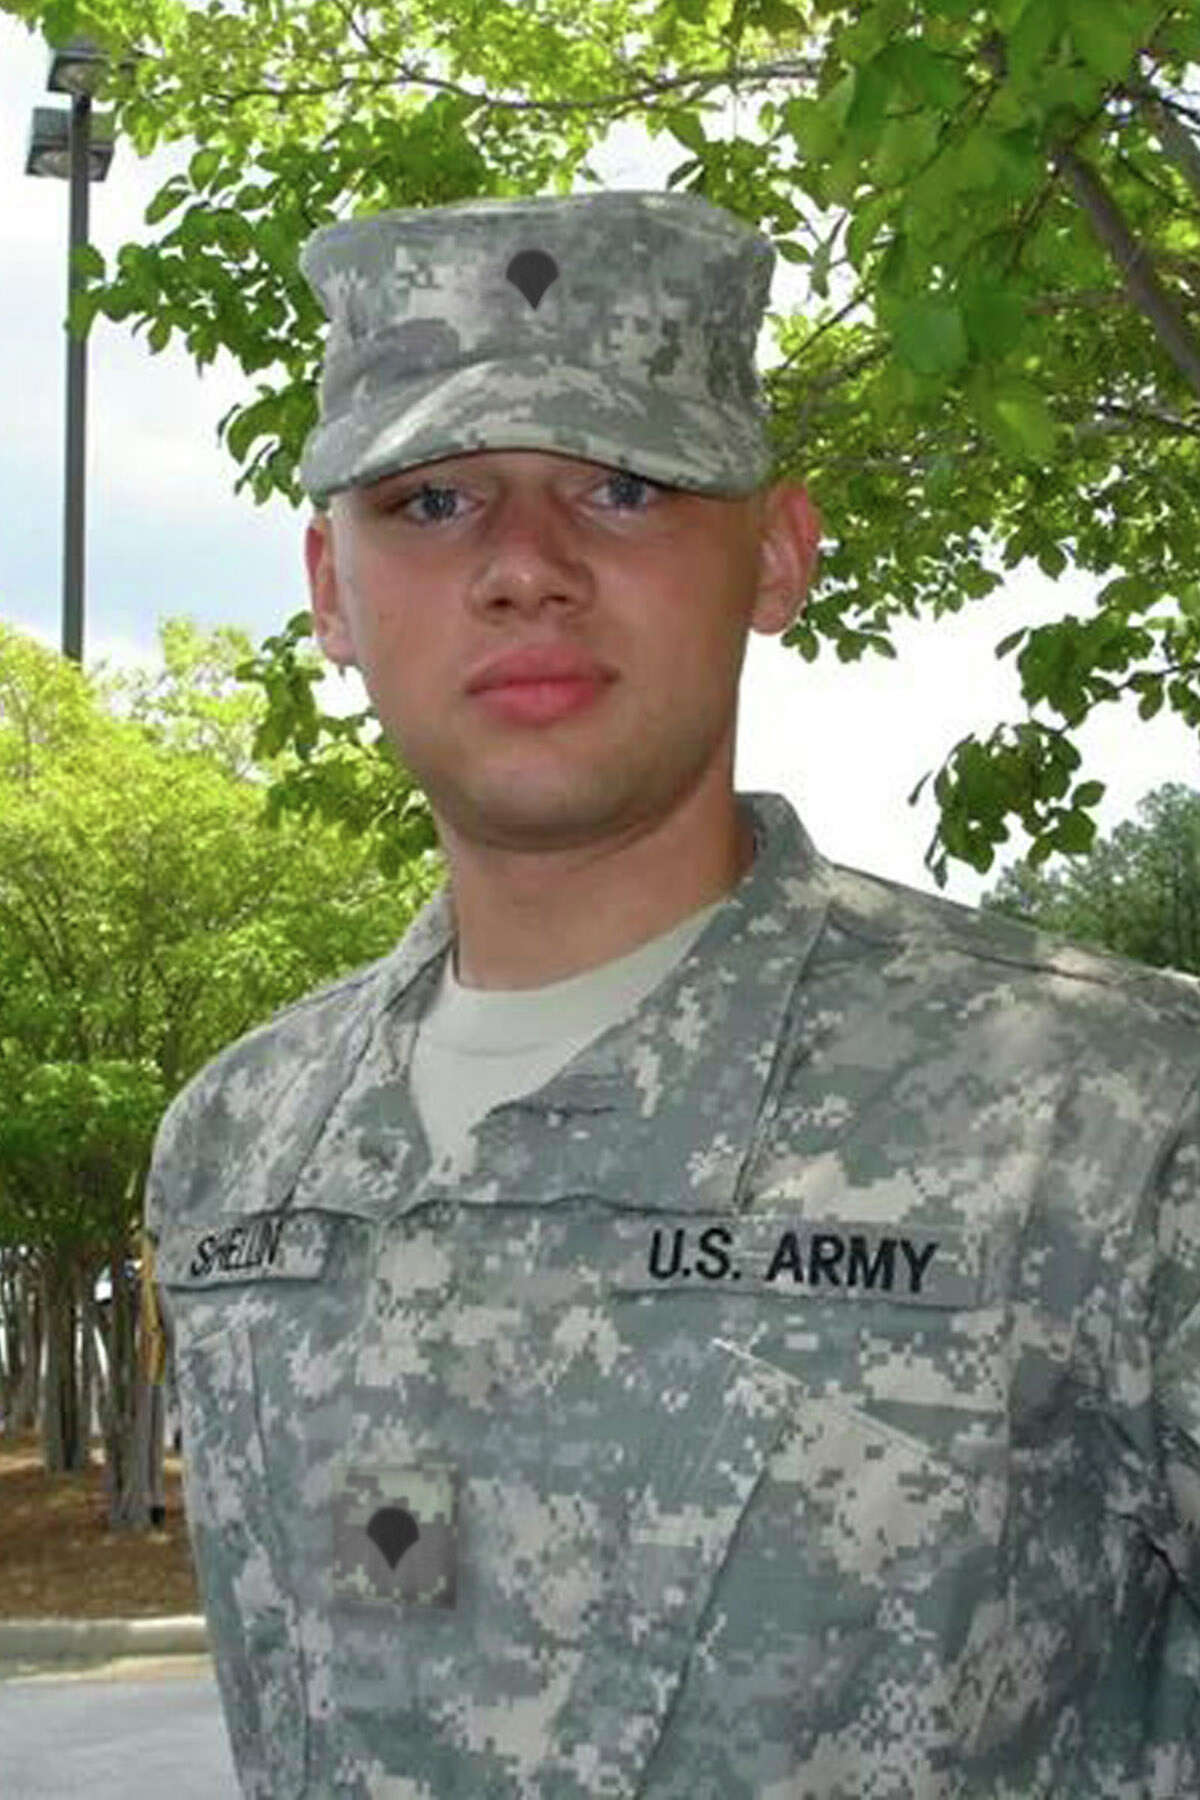 Spc. Gage Matthew-Gilbert Schellin died Nov. 2 from injuries suffered from an apparent gunshot wound at his off-post residence in Killeen, Texas. Spc. Gage Matthew-Gilbert Schellin, 22, whose home of record is listed as Fort Walton Beach, Florida, entered active duty service in May 2012 as a field artillery firefinder radar operator. He was assigned to Headquarters and Headquarters Battery, 3rd Battalion, 82nd Field Artillery Regiment, 2nd Brigade Combat Team, 1st Cavalry Division, Fort Hood, since Aug. 2014. Schellin deployed in support of Operation Enduring Freedom from July 2013 to March 2014. Schellin's awards and decorations include the National Defense Service Medal, Global War on Terrorism Service Medal, Afghanistan Campaign Medal with campaign star, Army Good Conduct Medal, NATO Medal and Army Service Ribbon.